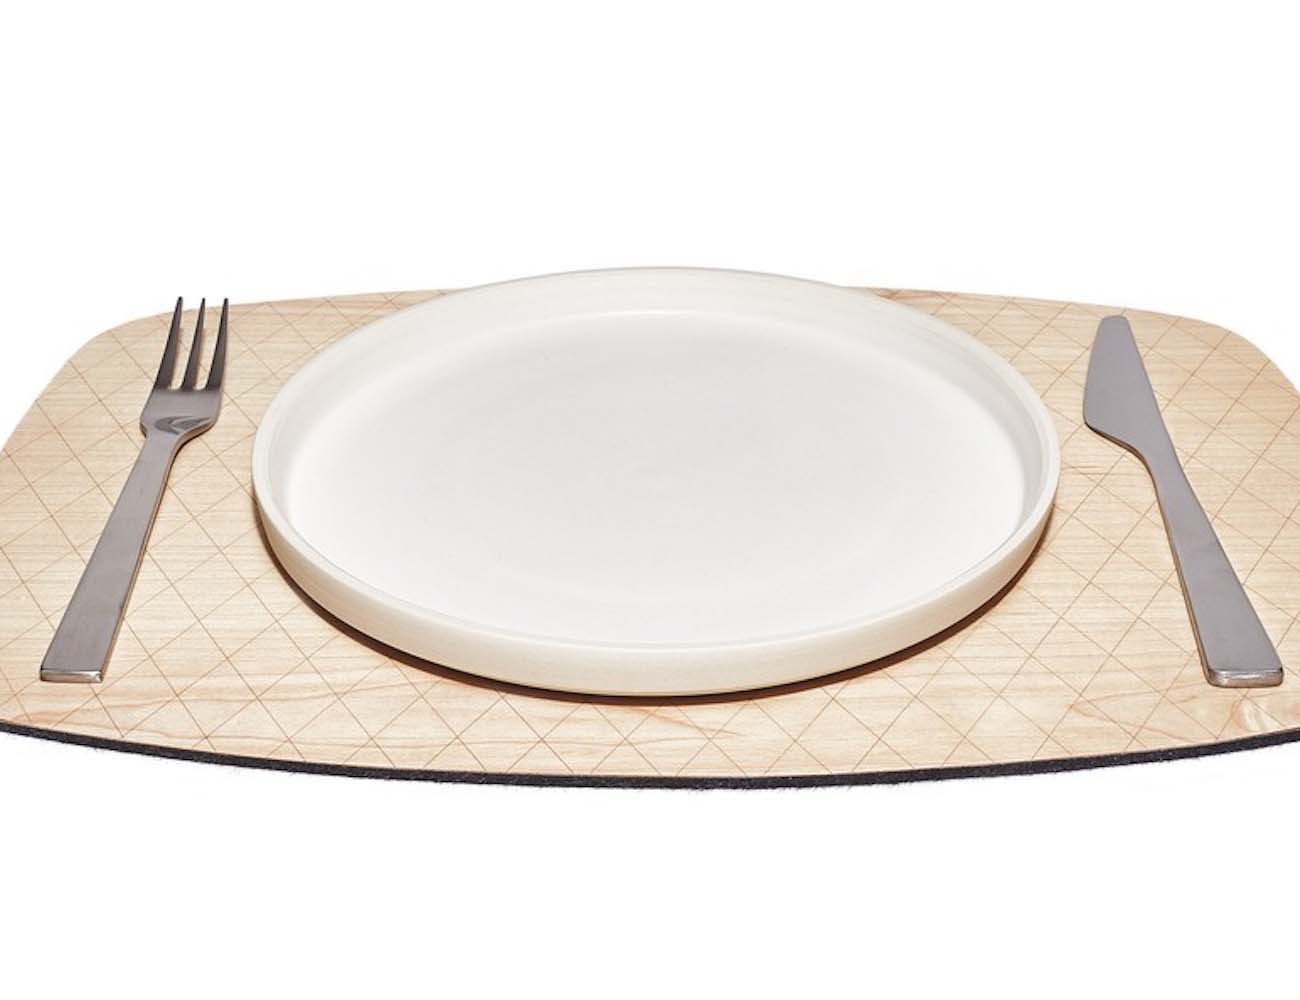 Reversible Maple Placemat by Grovemade